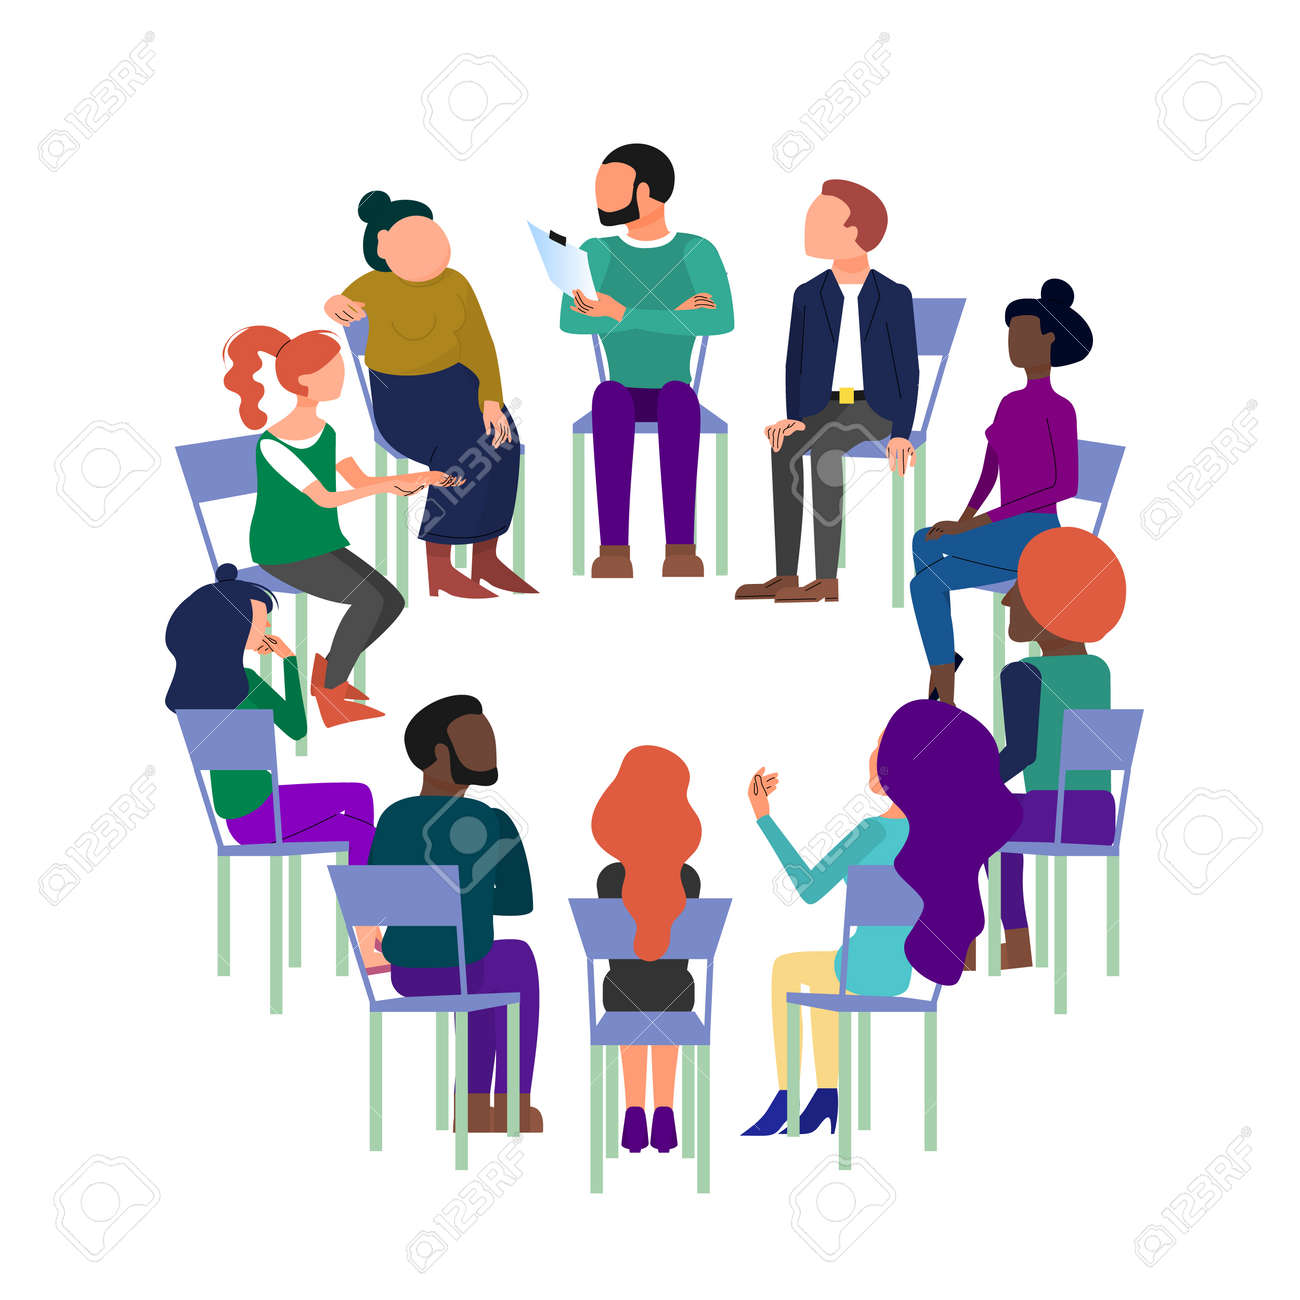 Concept art of group therapy, brainstorming meeting, people sitting in circle, anonymous club. Isolated on white background. - 133514136